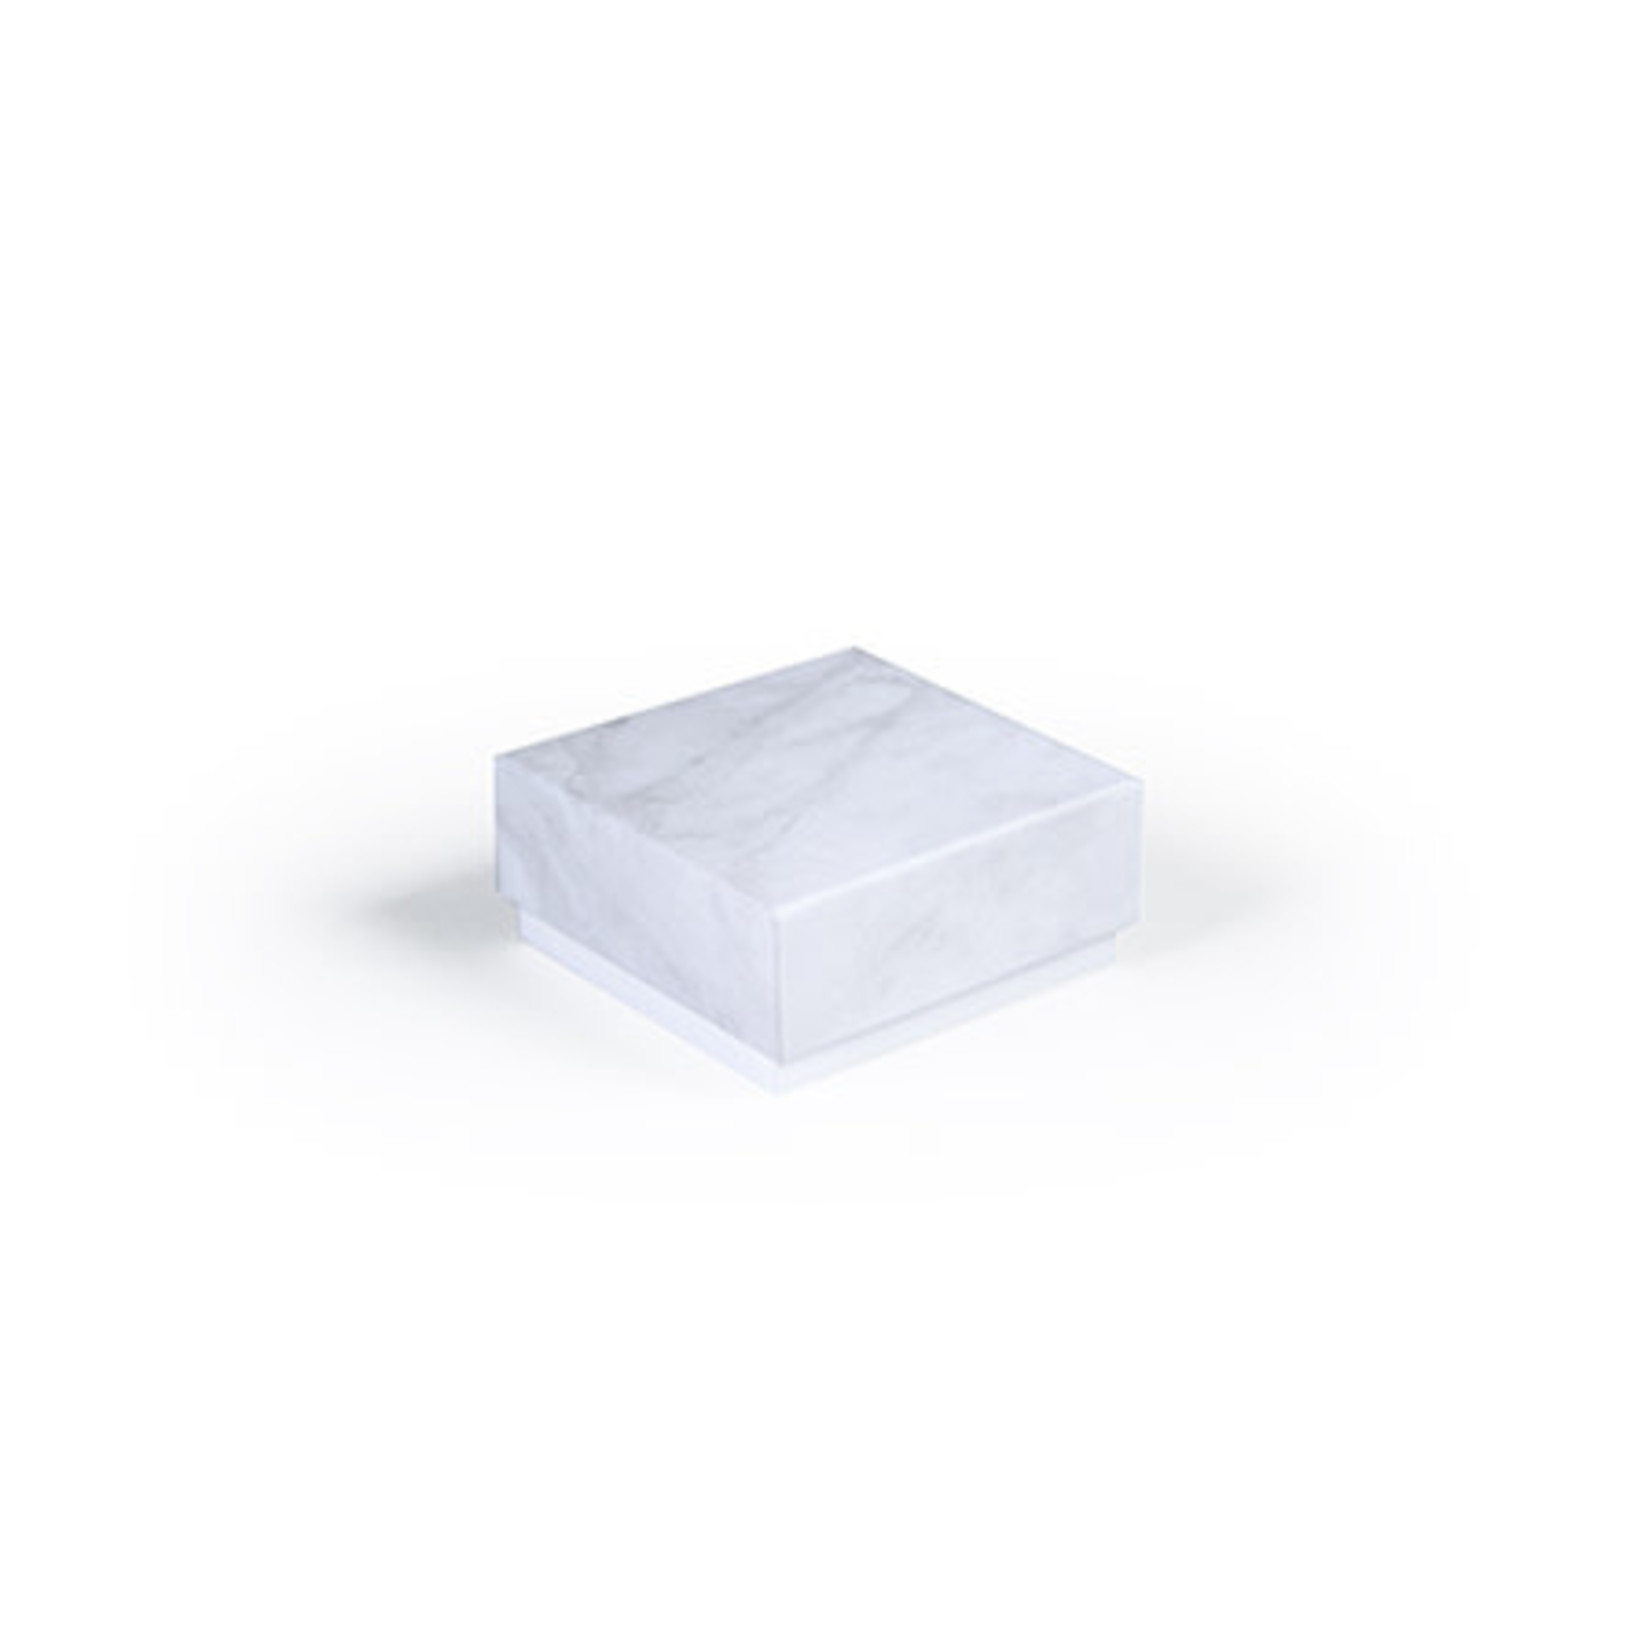 BB collections Luxe box marmer 6.5x6.5x3cm grijs